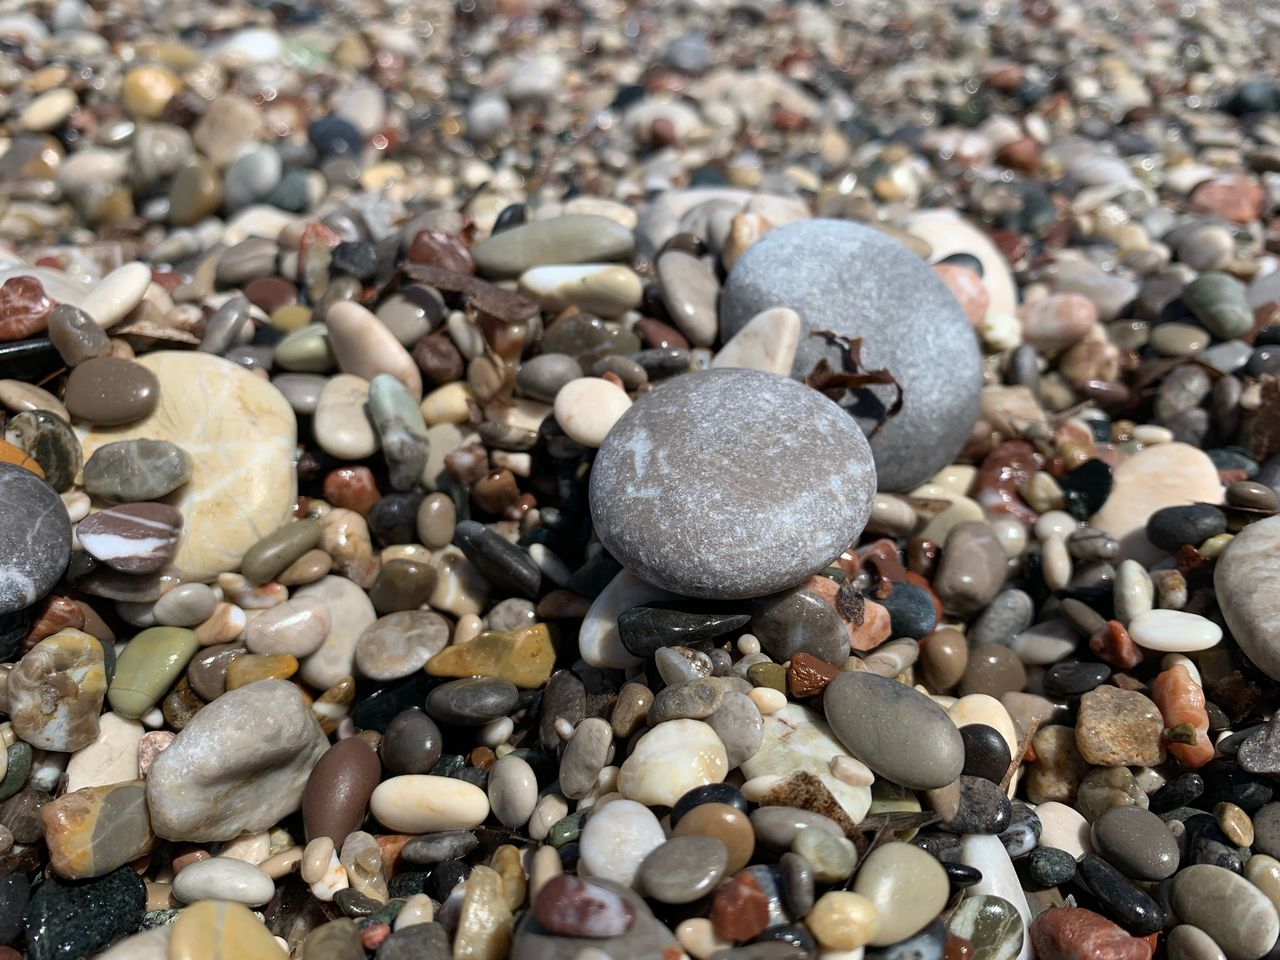 pebble, stone, stone - object, solid, no people, rock, land, abundance, full frame, nature, close-up, beach, high angle view, variation, day, large group of objects, choice, backgrounds, shell, rock - object, gravel, precious gem